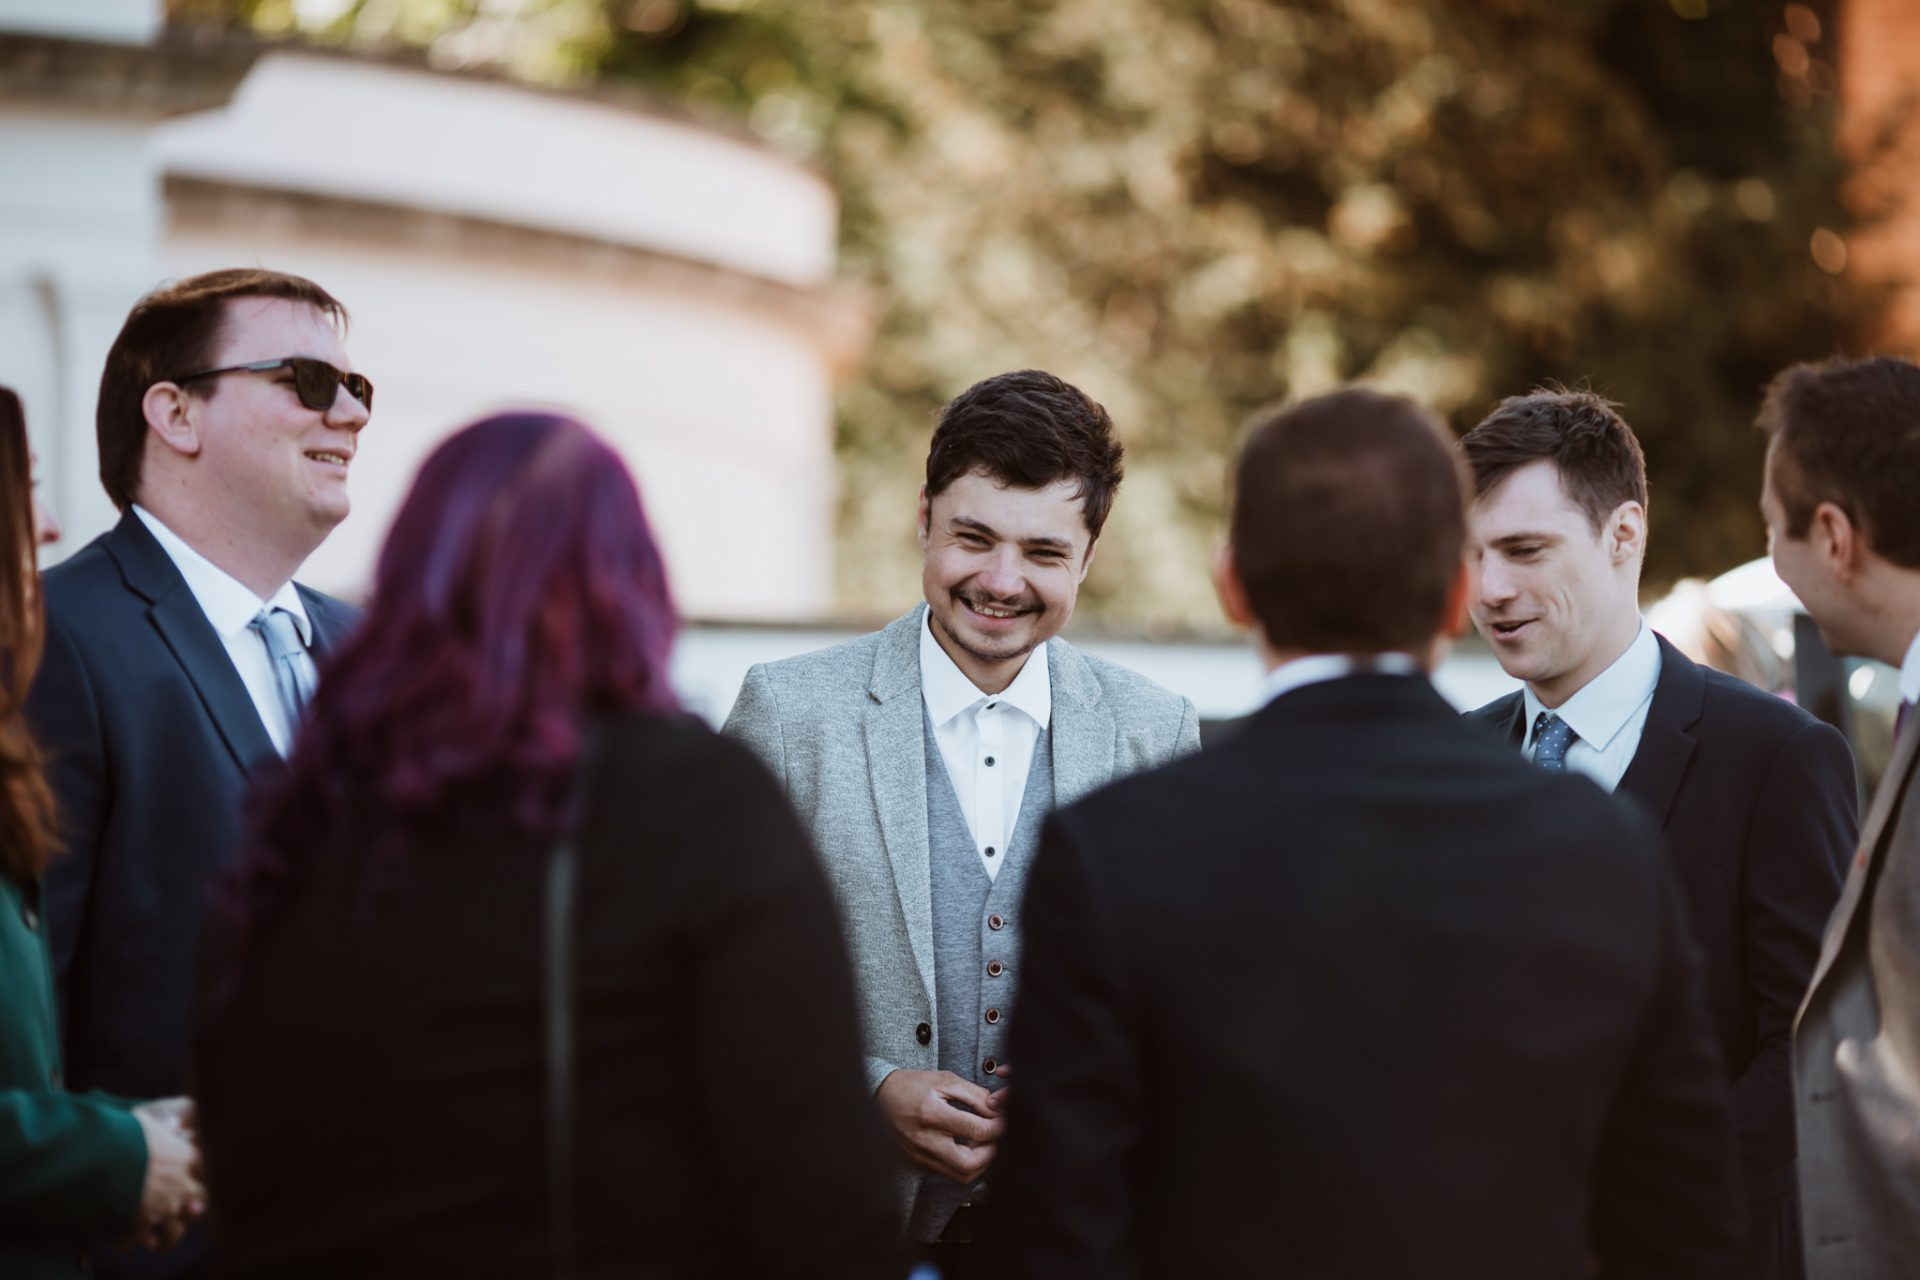 candid photo of guests laughing before the ceremony